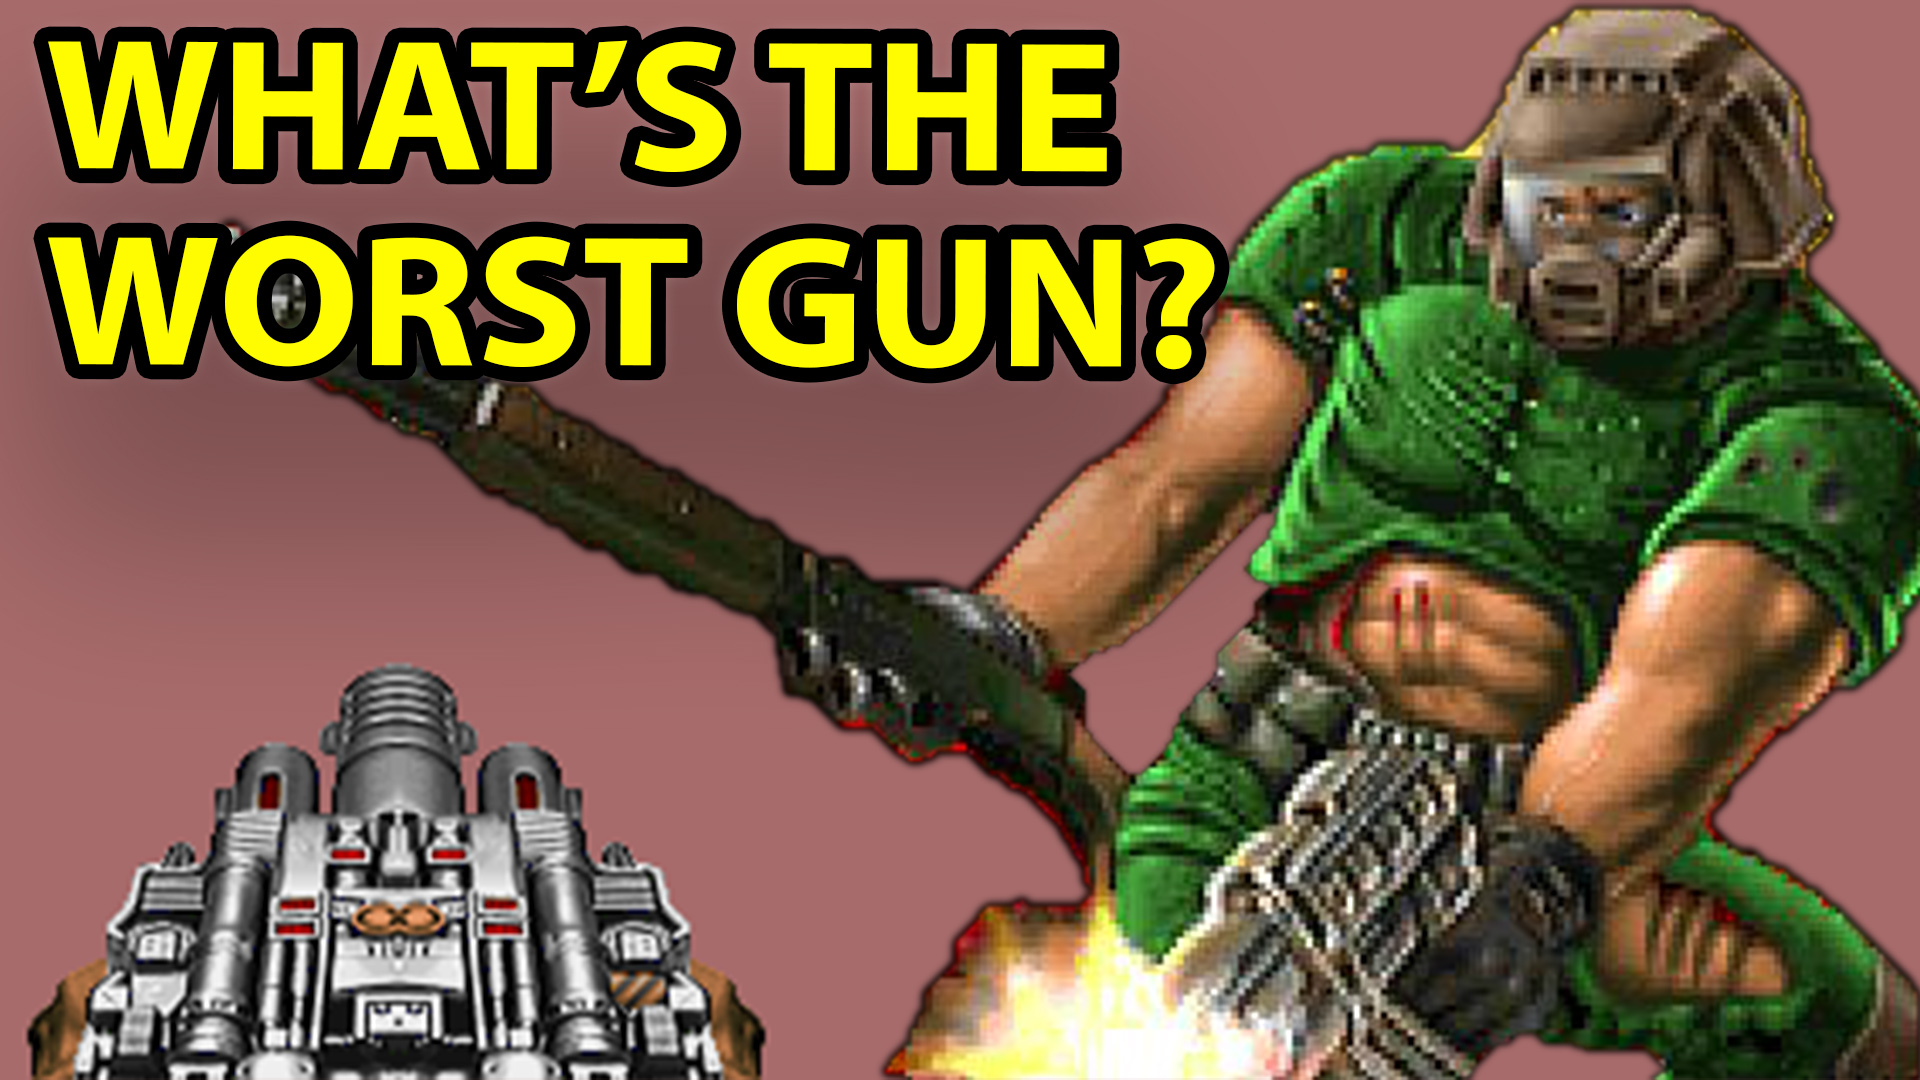 T Time, video games, Doom, BFG, The Rock, movie, guns, best, worst